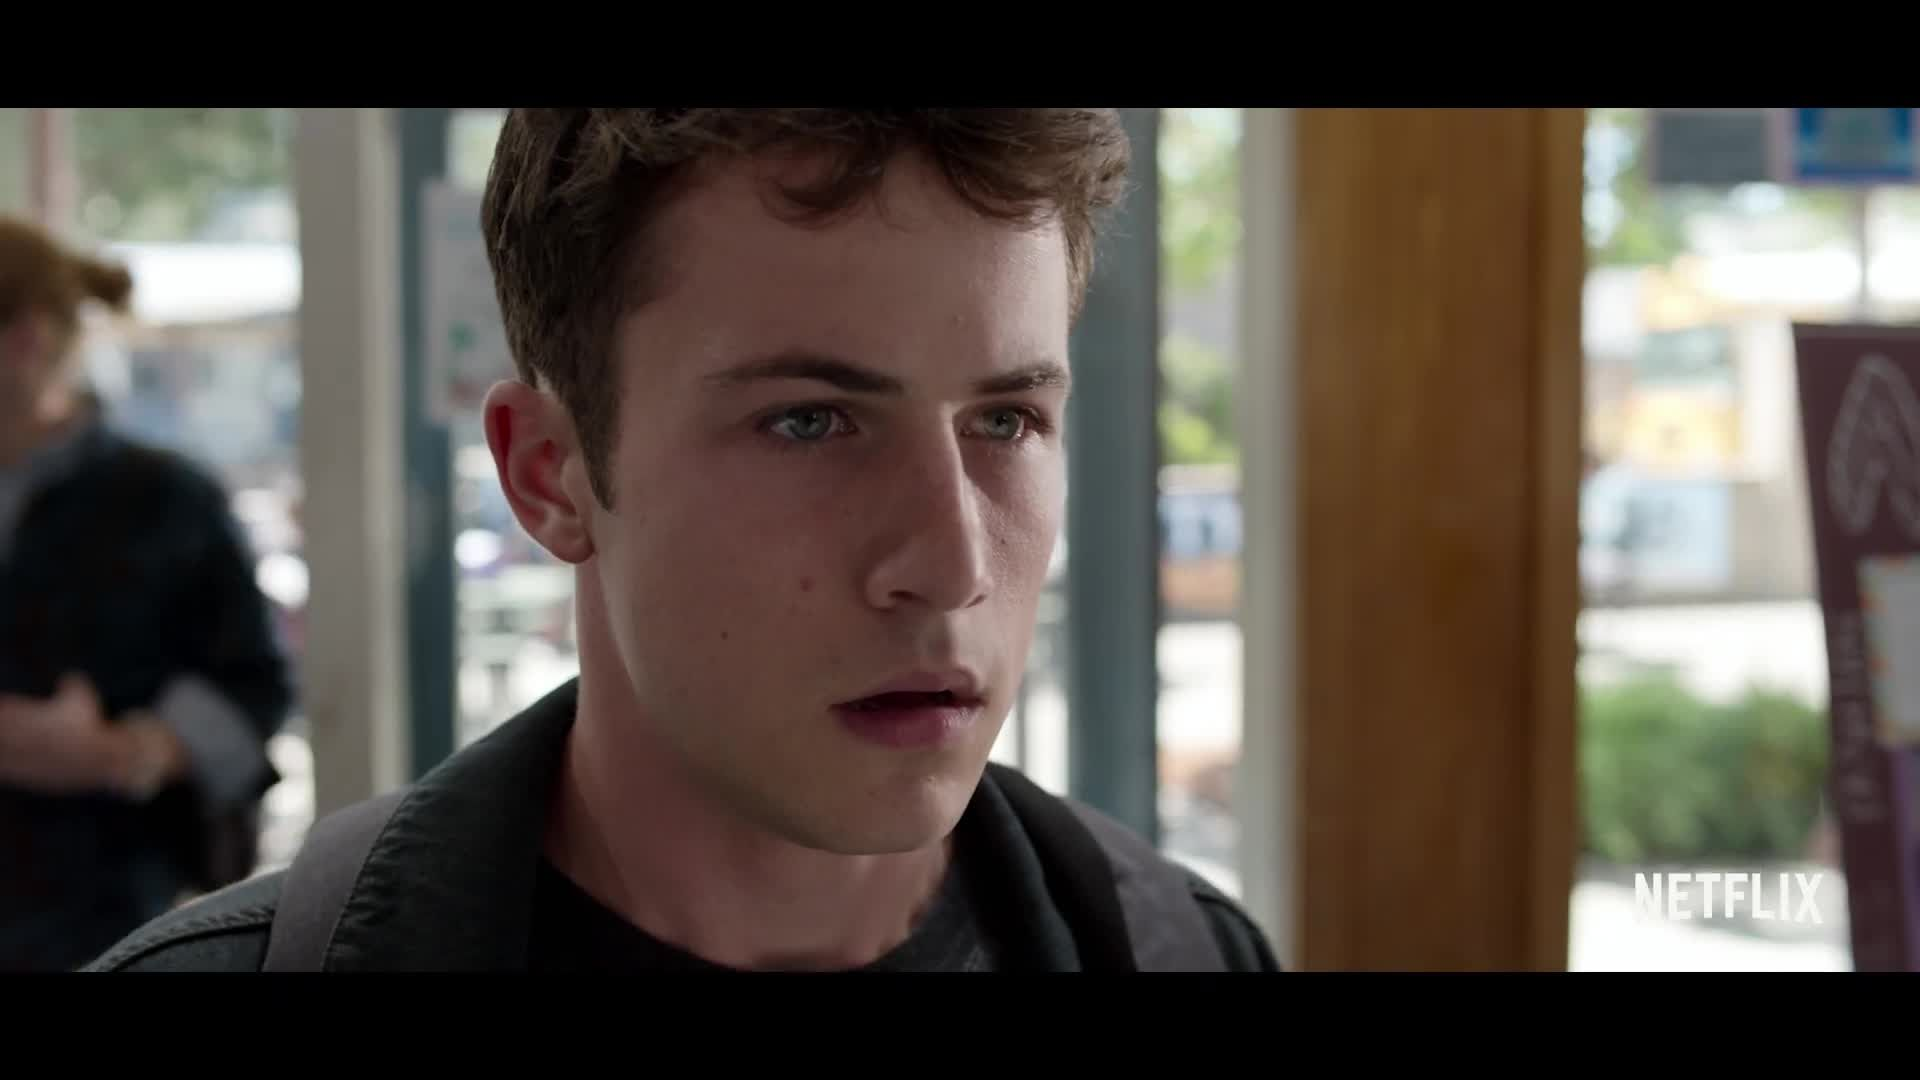 Let's Talk About the Mysterious Death in '13 Reasons Why' Season 4